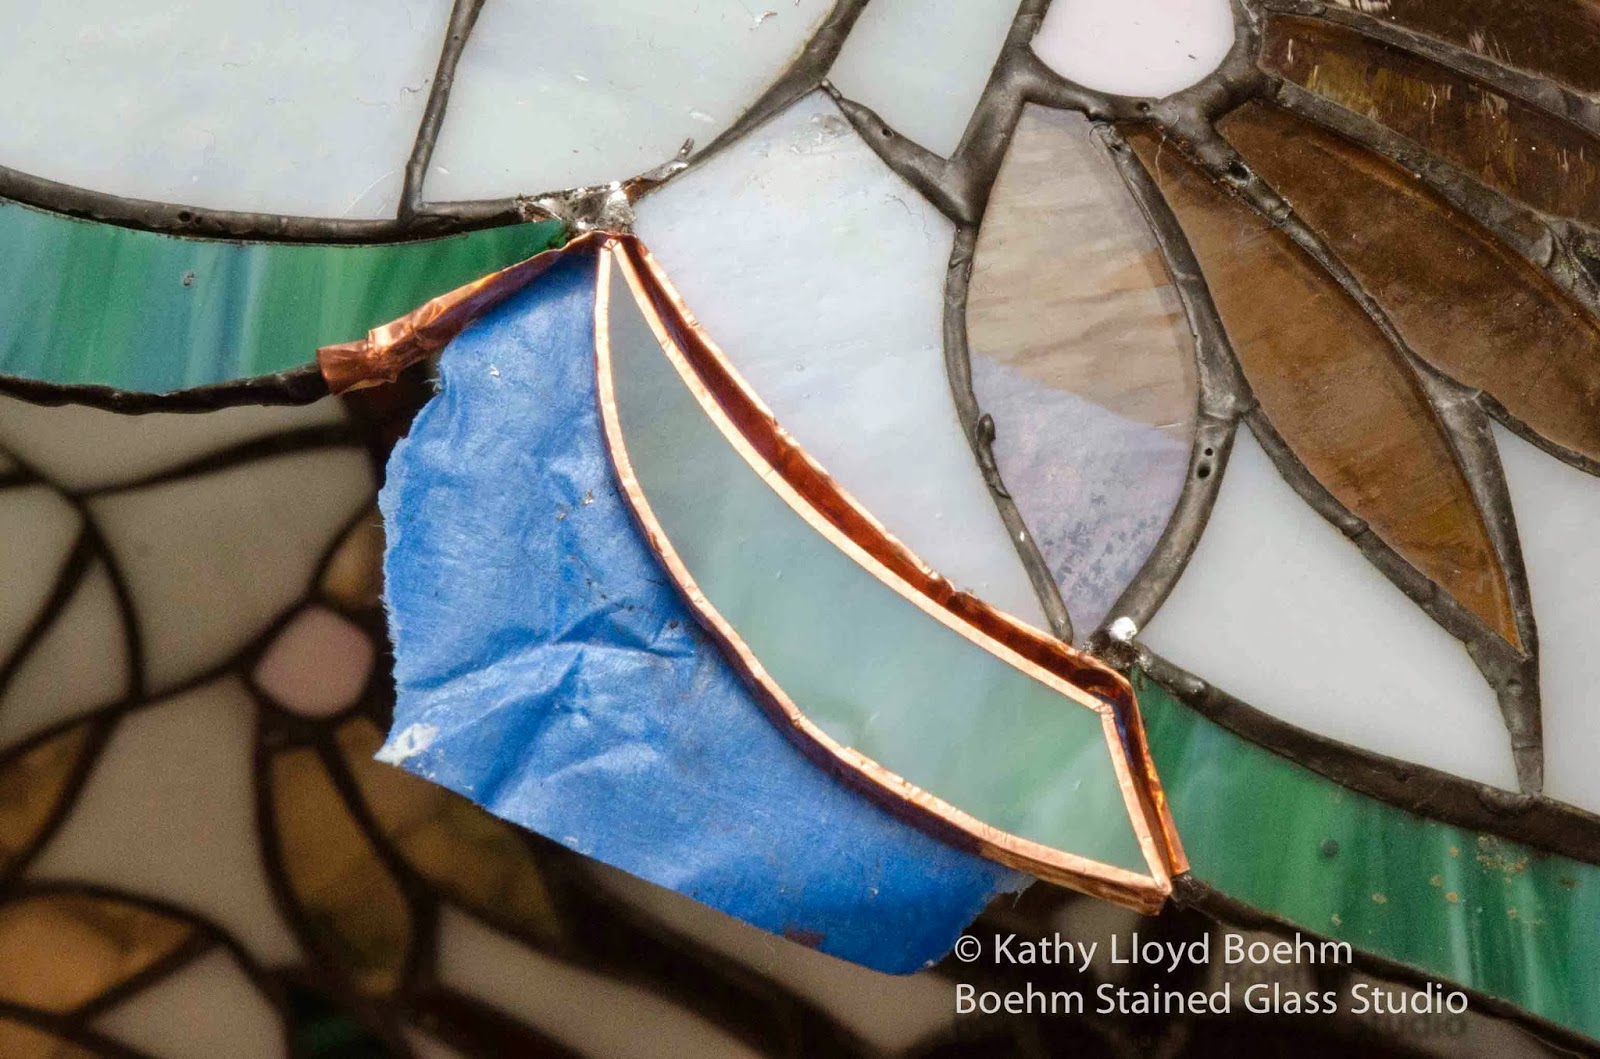 Boehm Stained Glass Blog: Daisy Tree Lamp Repair